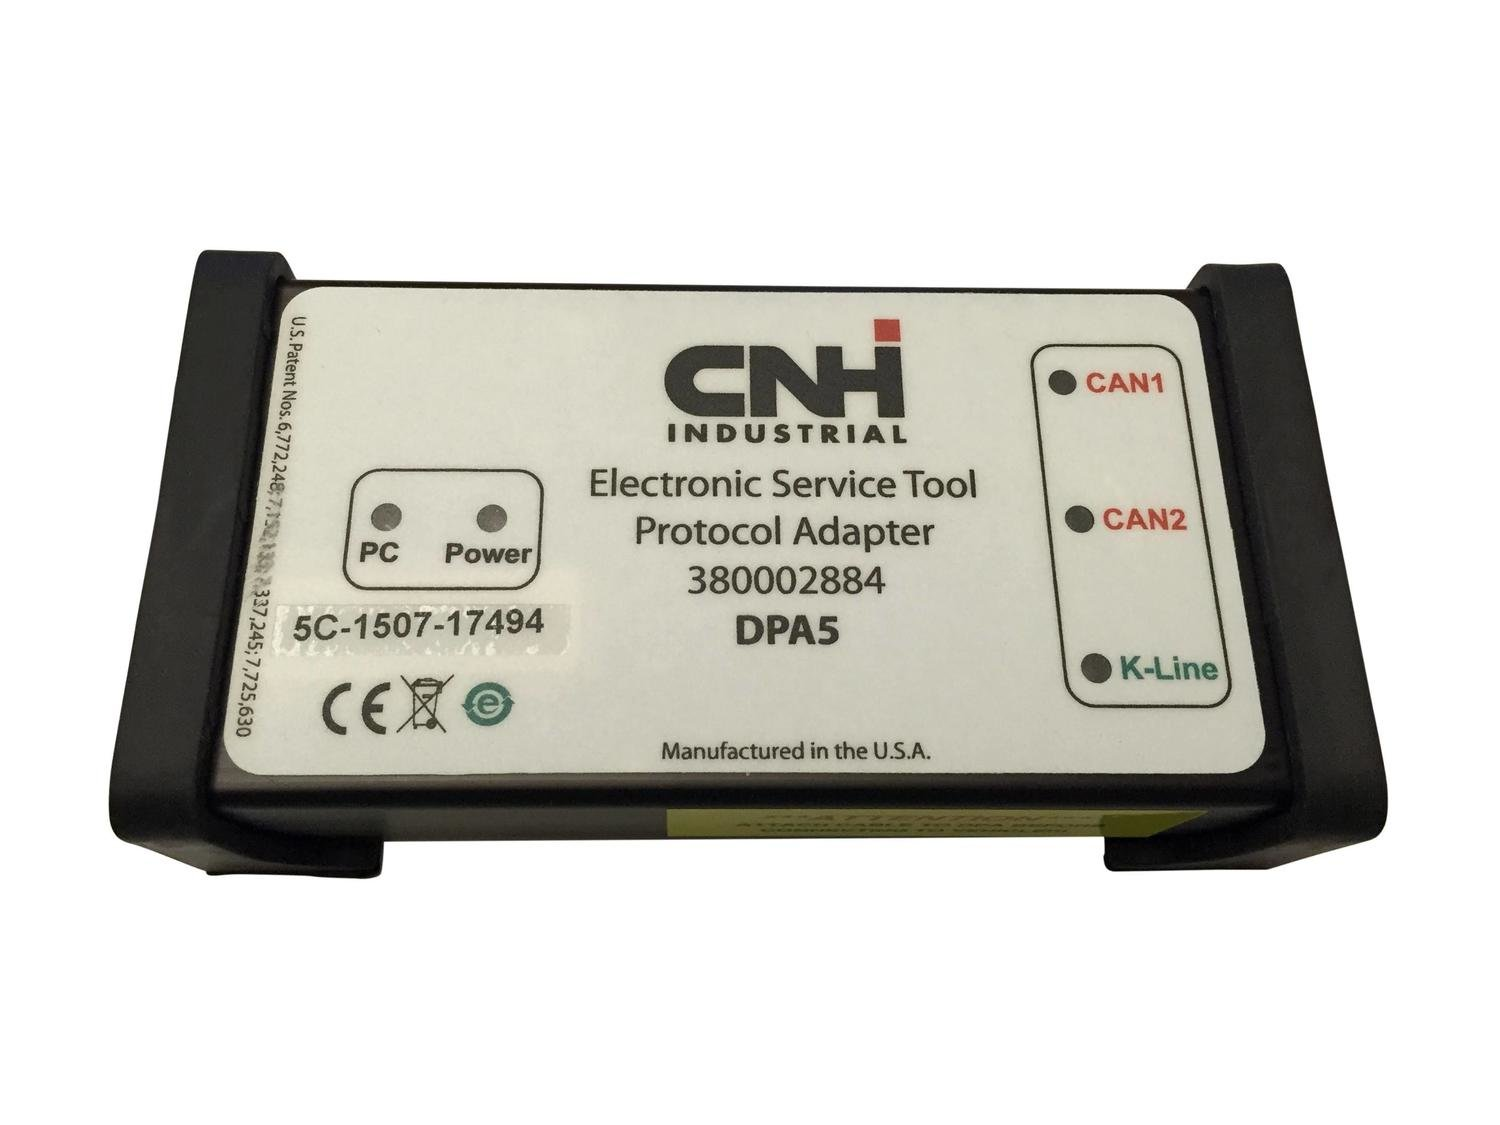 Case New Holland CNH Adapter DPA5 Electronic Service Tool Adapter Cable Kit 380002884-KIT CNH Adapter